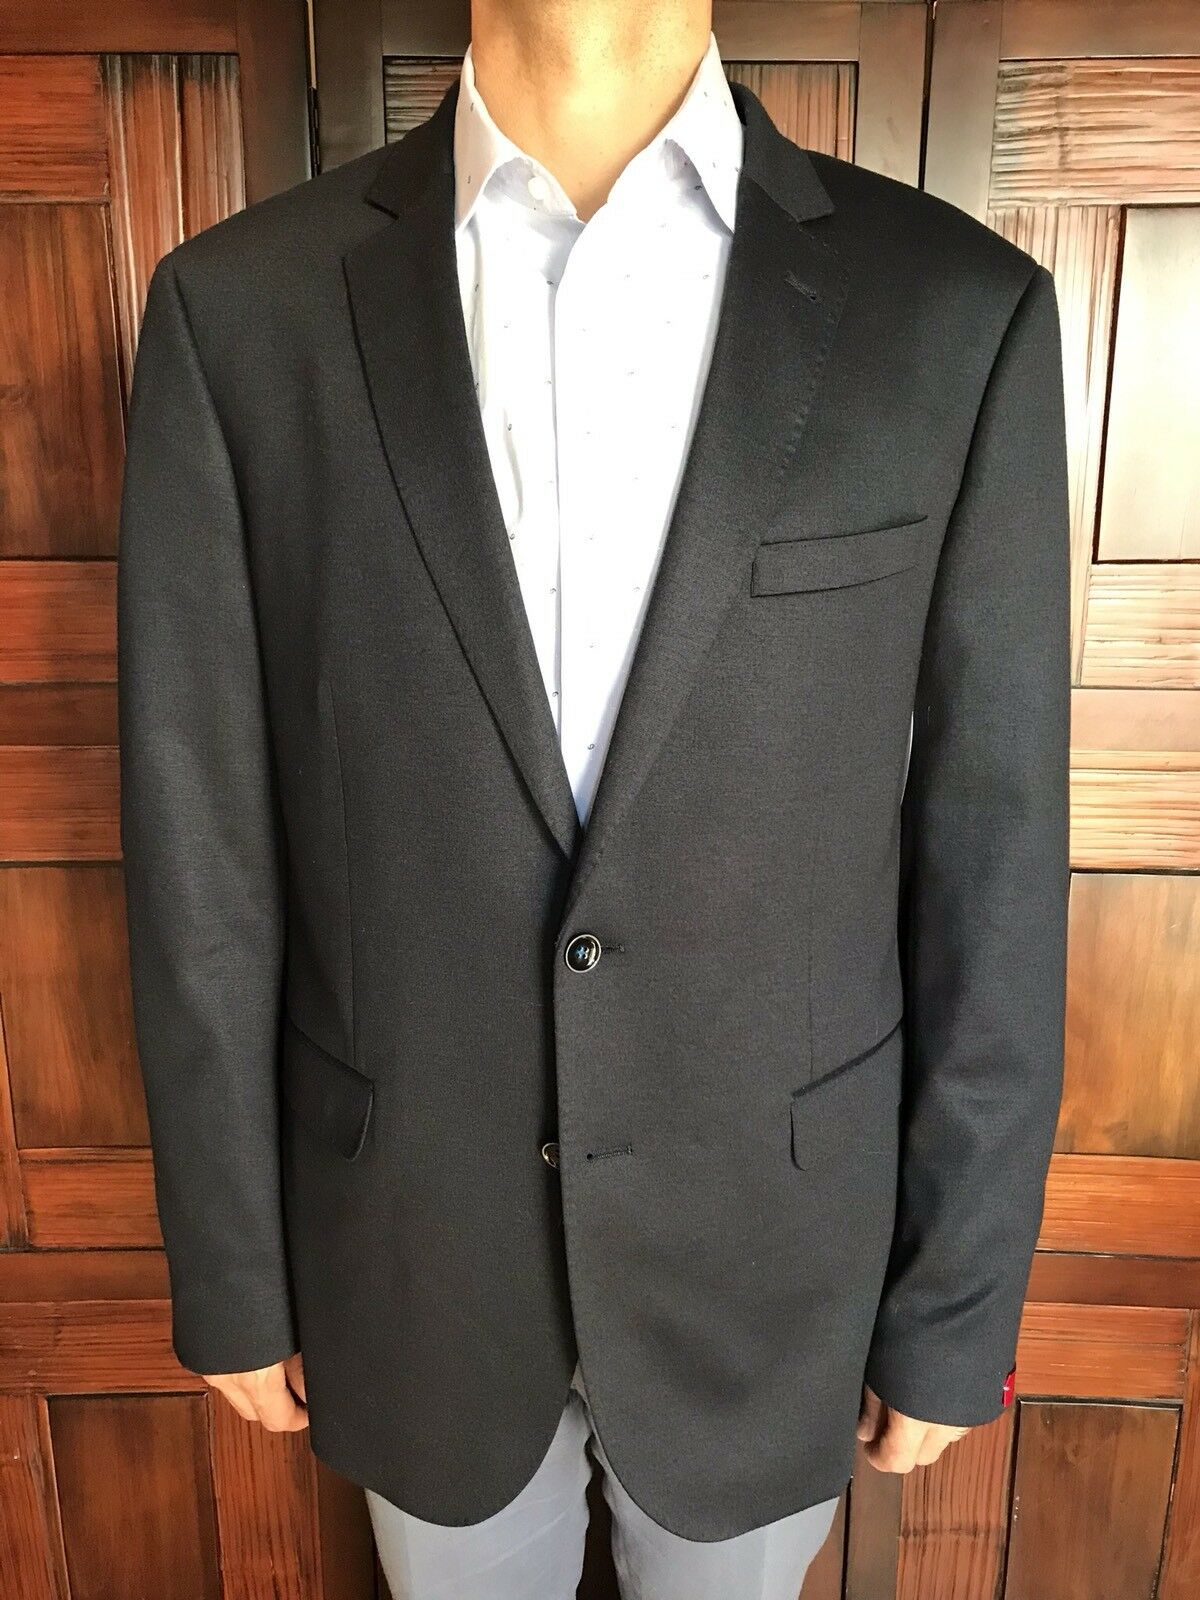 JKT New York Men's Casual Soft Sport Coat in Navy Size 46R New